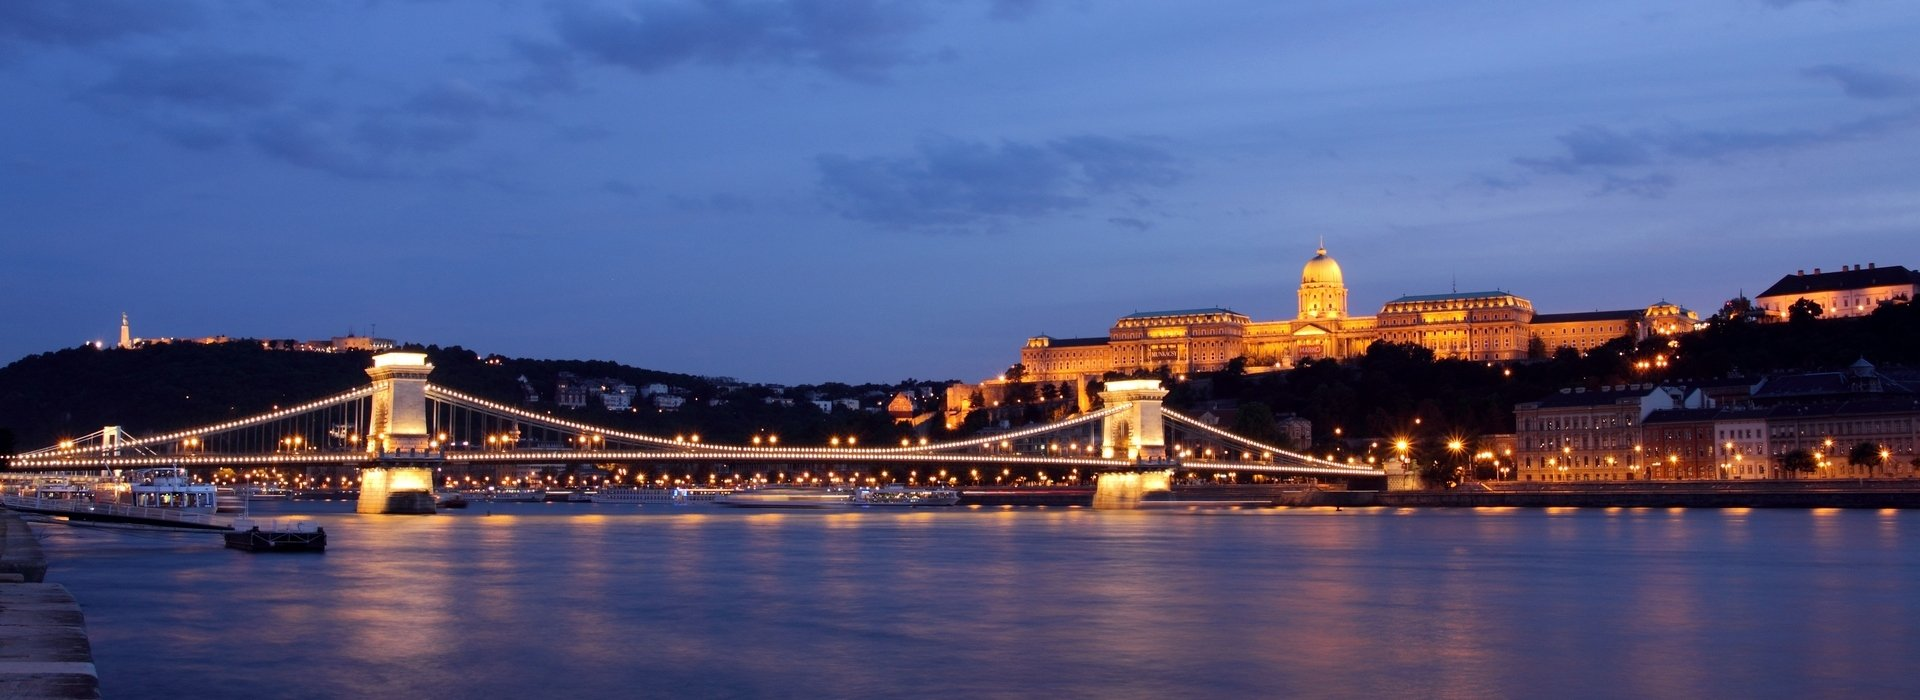 Buda Sights at the Danube – Attractions at Buda Embankment of the Danube in Budapest